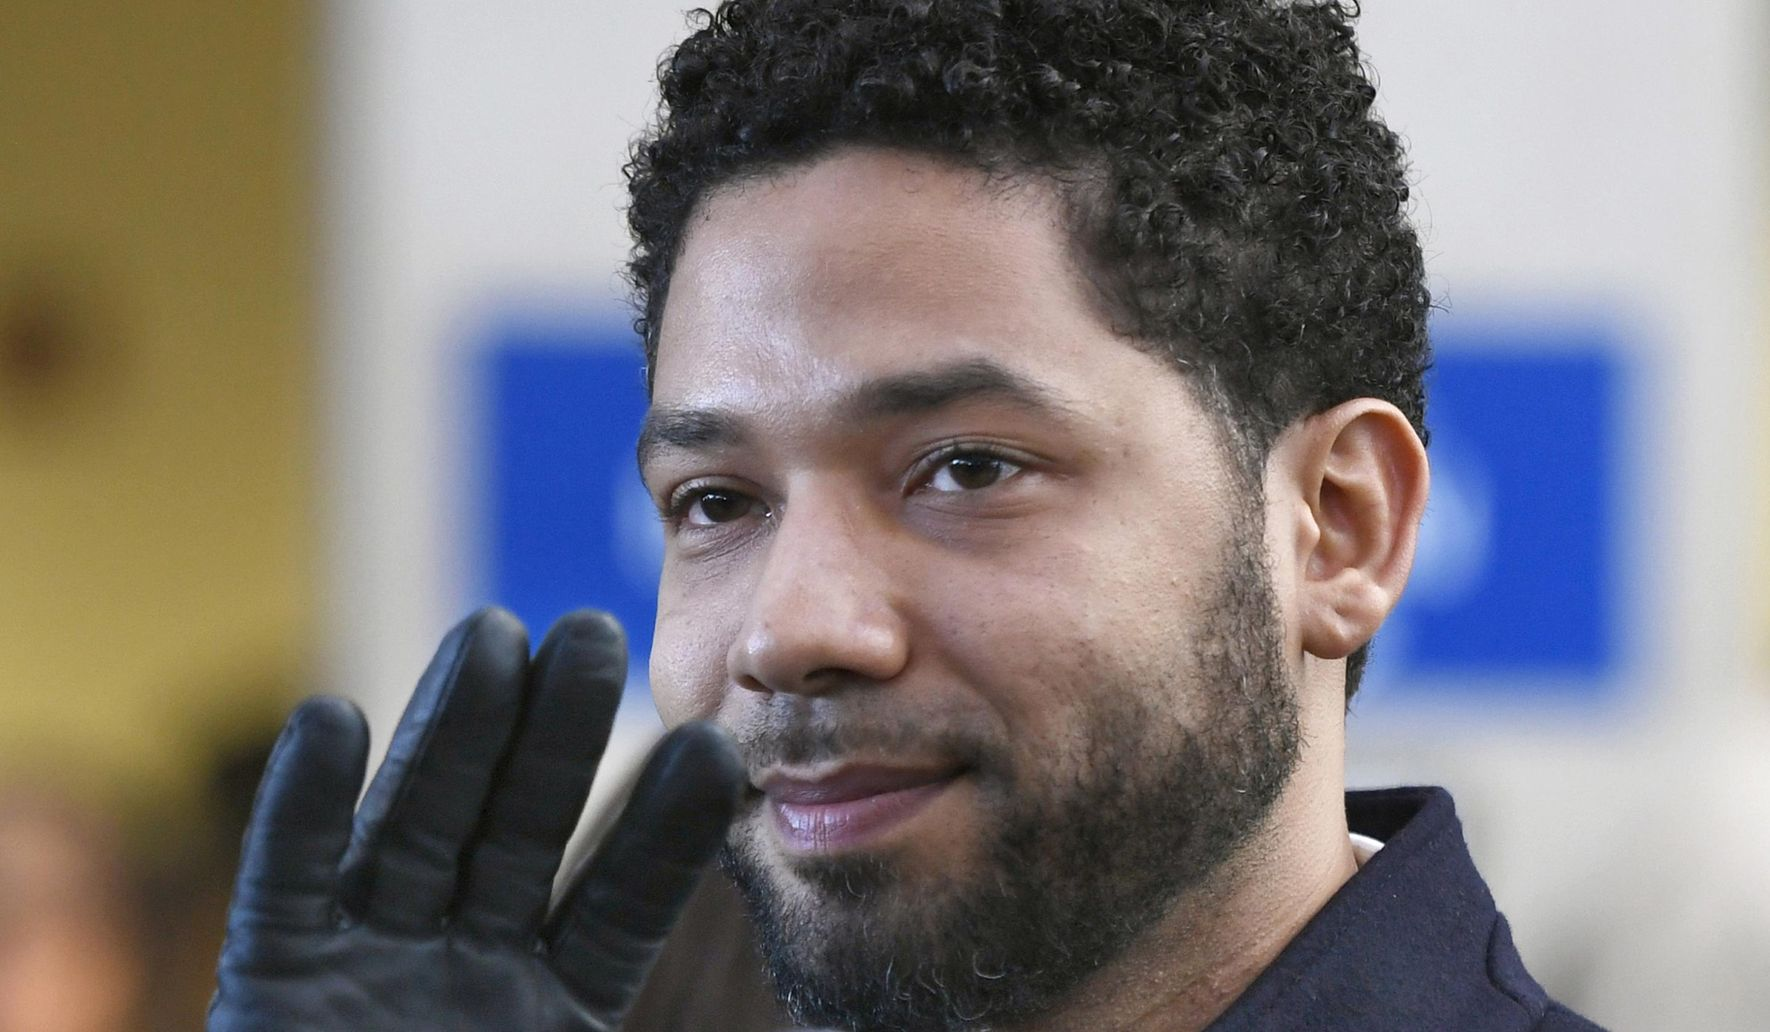 Judge orders Google to turn over Jussie Smollett emails, private messages, location data